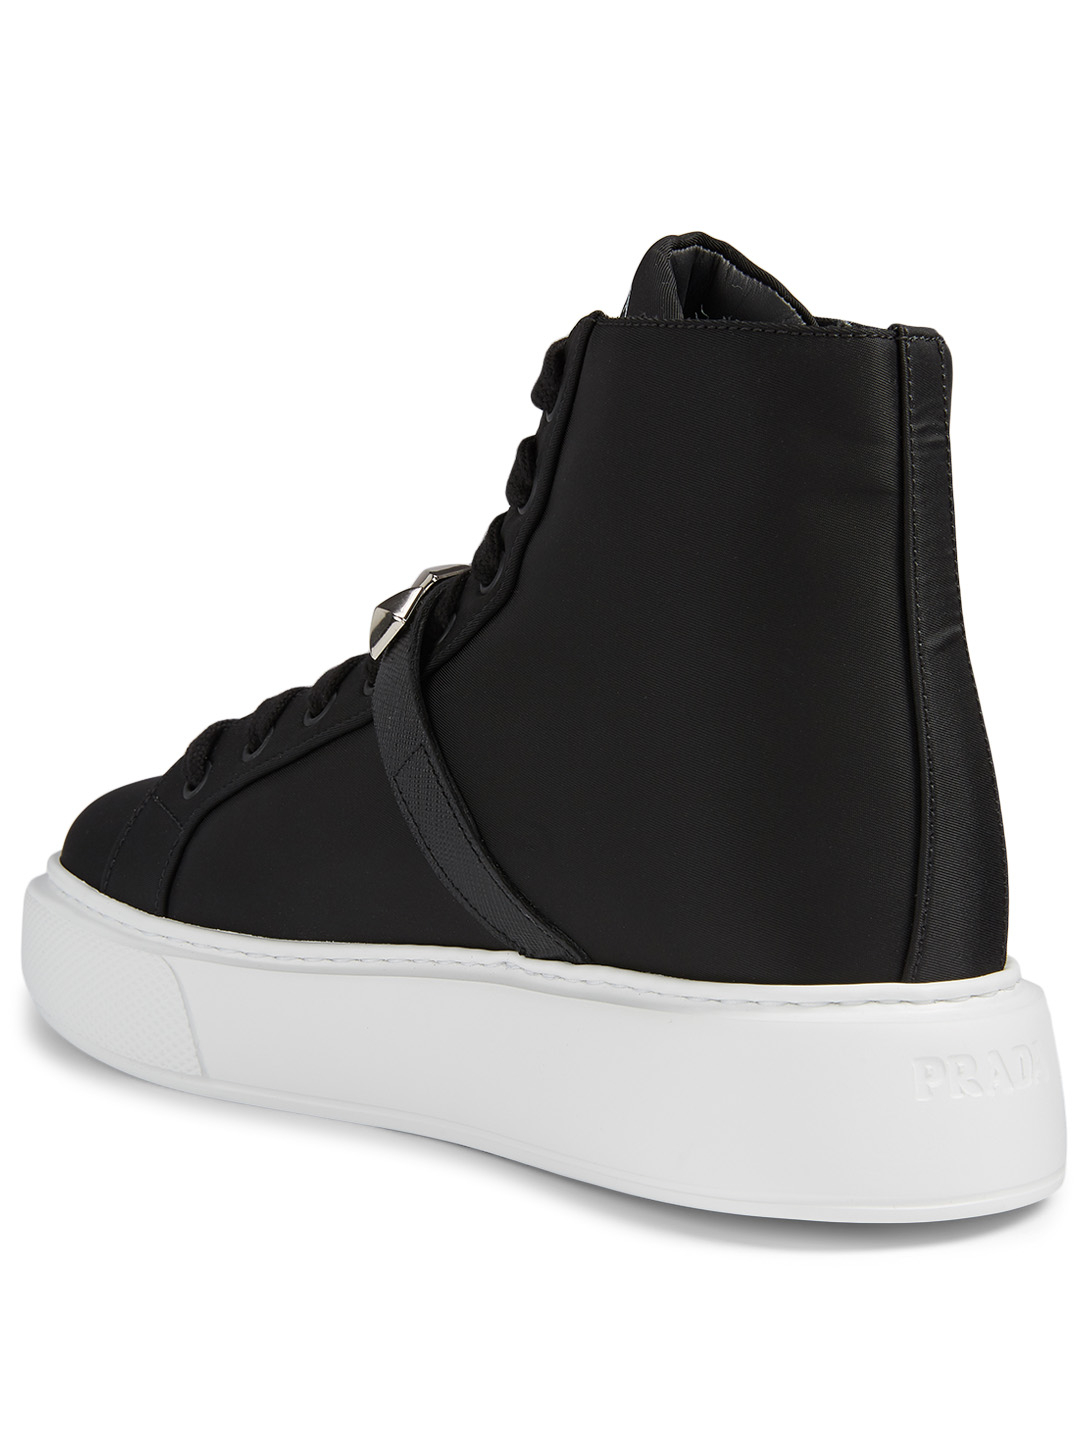 PRADA Nylon High-Top Sneakers With Studs Women's Black